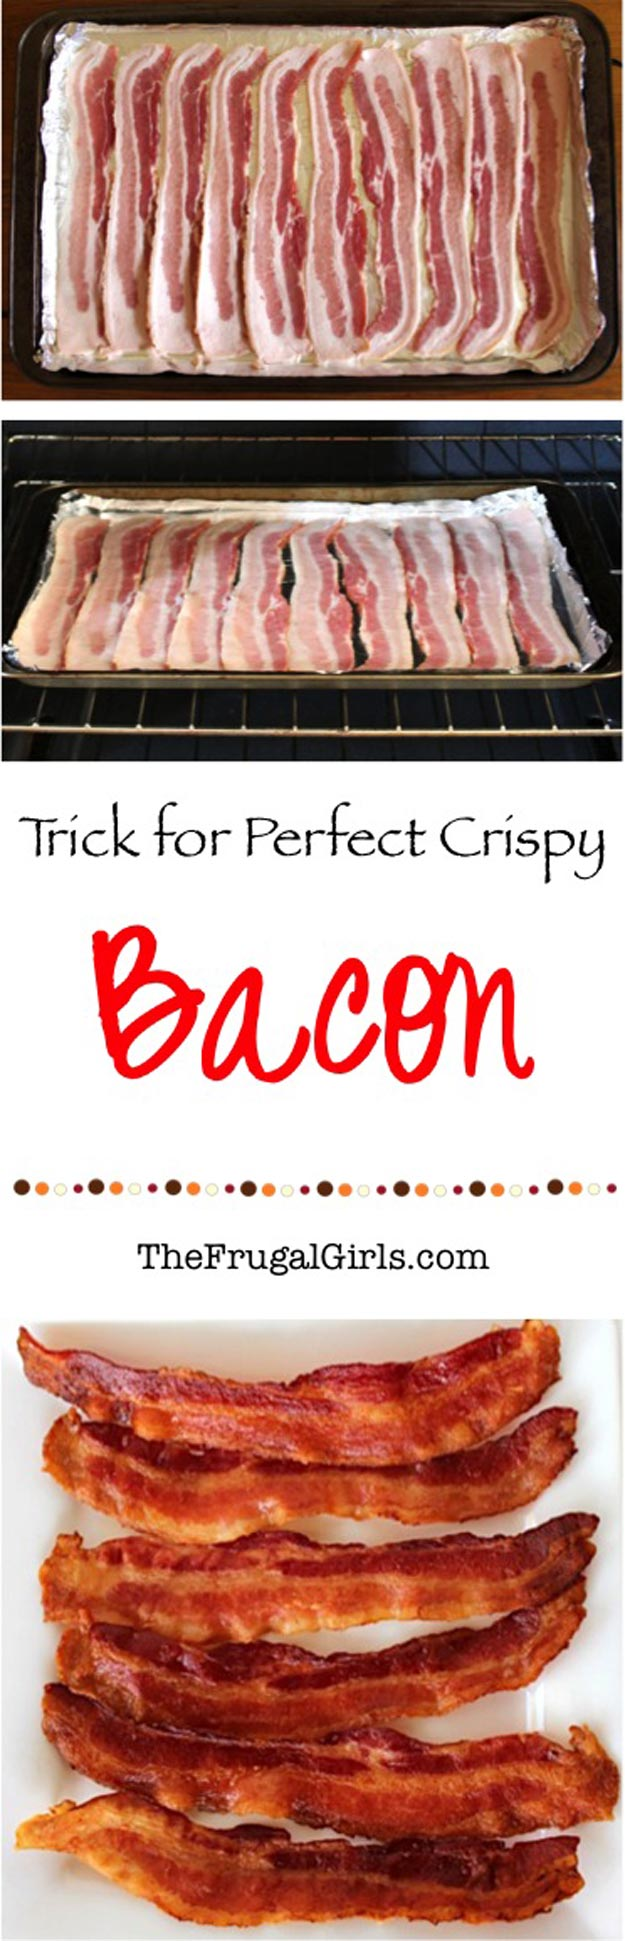 Coolest Cooking Hacks, Tips and Tricks for Easy Meal Prep, Recipe Shortcuts and Quick Ideas for Food | Make Perfect Crispy Bacon in the Oven | http://cooking-tips-diy-kitchen-hacks